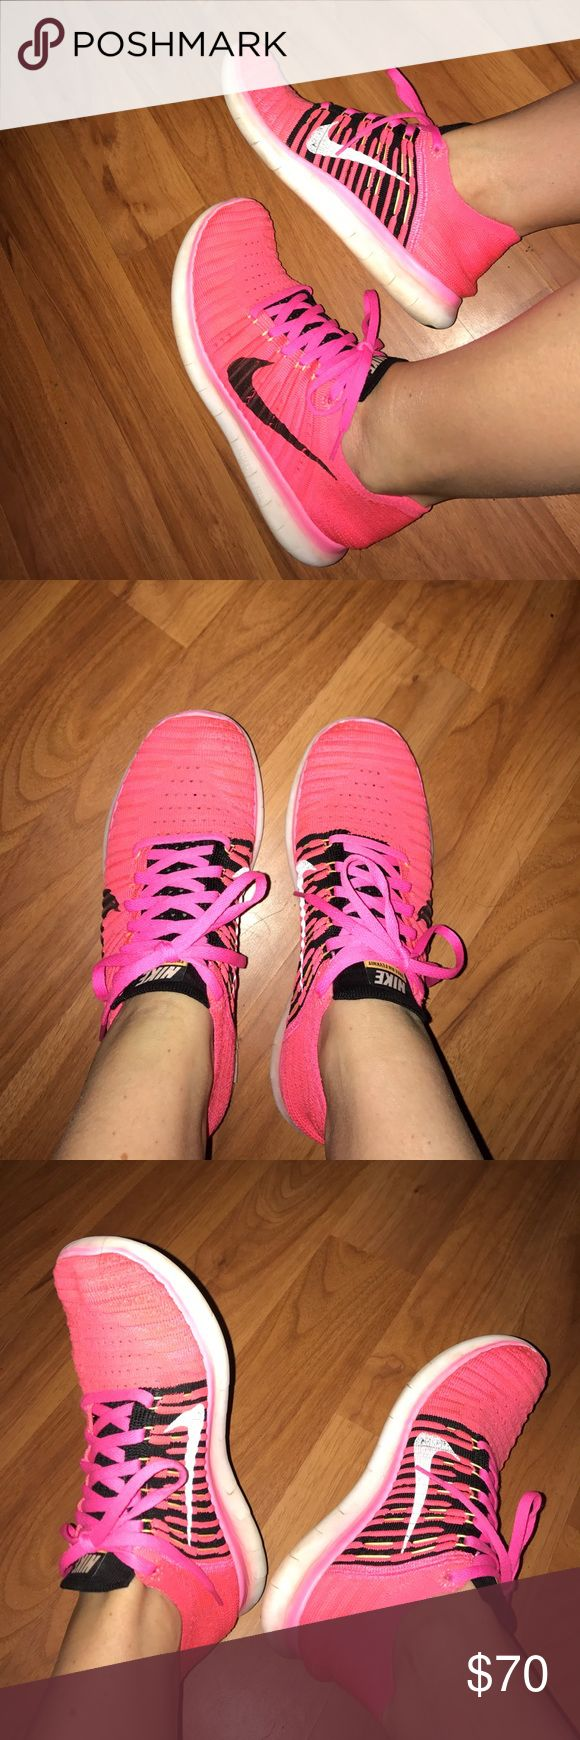 athletes run why i love nikes running shoes advertisement Our first low-top basketball shoe made famous by kareem abdul jabbar & run dmc,  all women's shoes  advertisement and opinion research purposes.